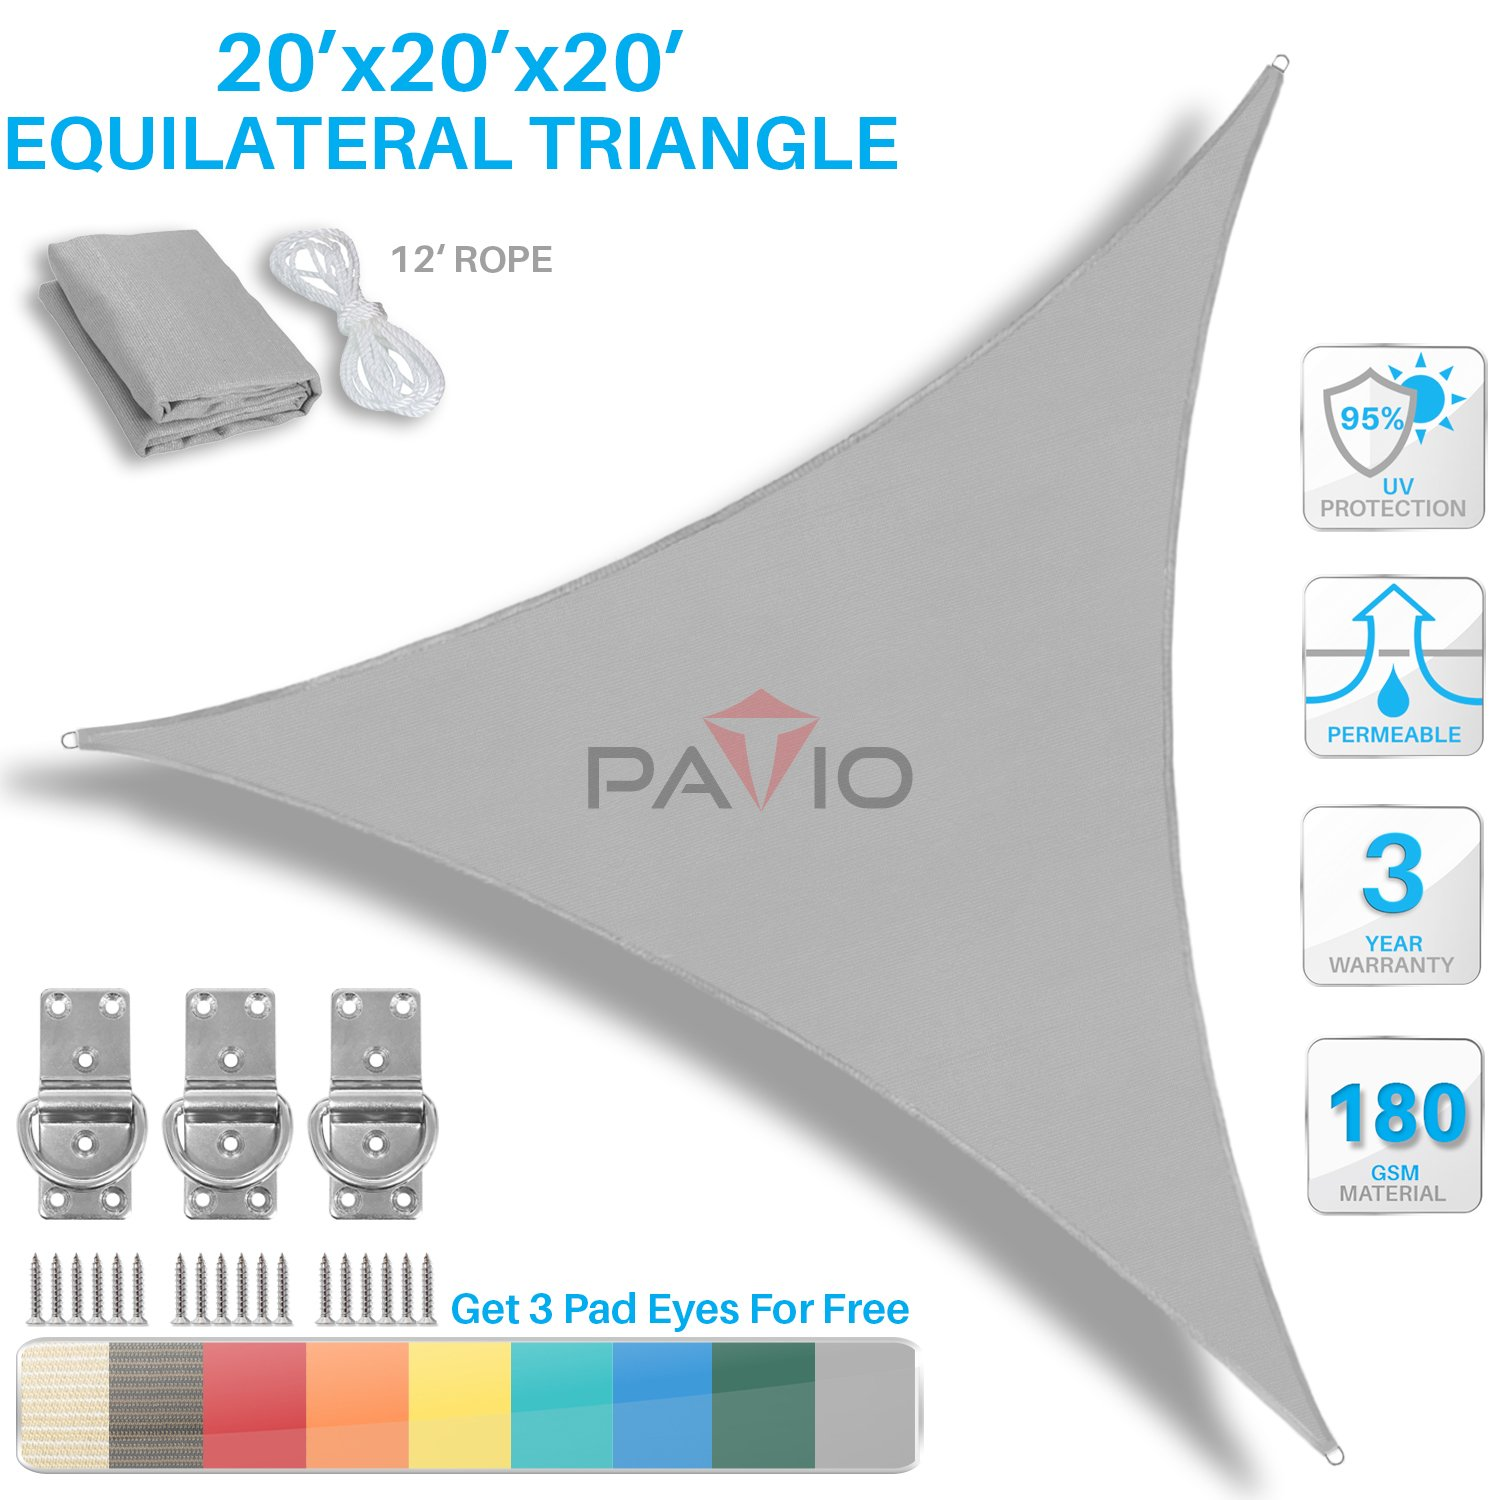 Patio Paradise 20' x 20' x 20' Light Grey Sun Shade Sail Equilateral Triangle Canopy - Permeable UV Block Fabric Durable Outdoor - Customized Available